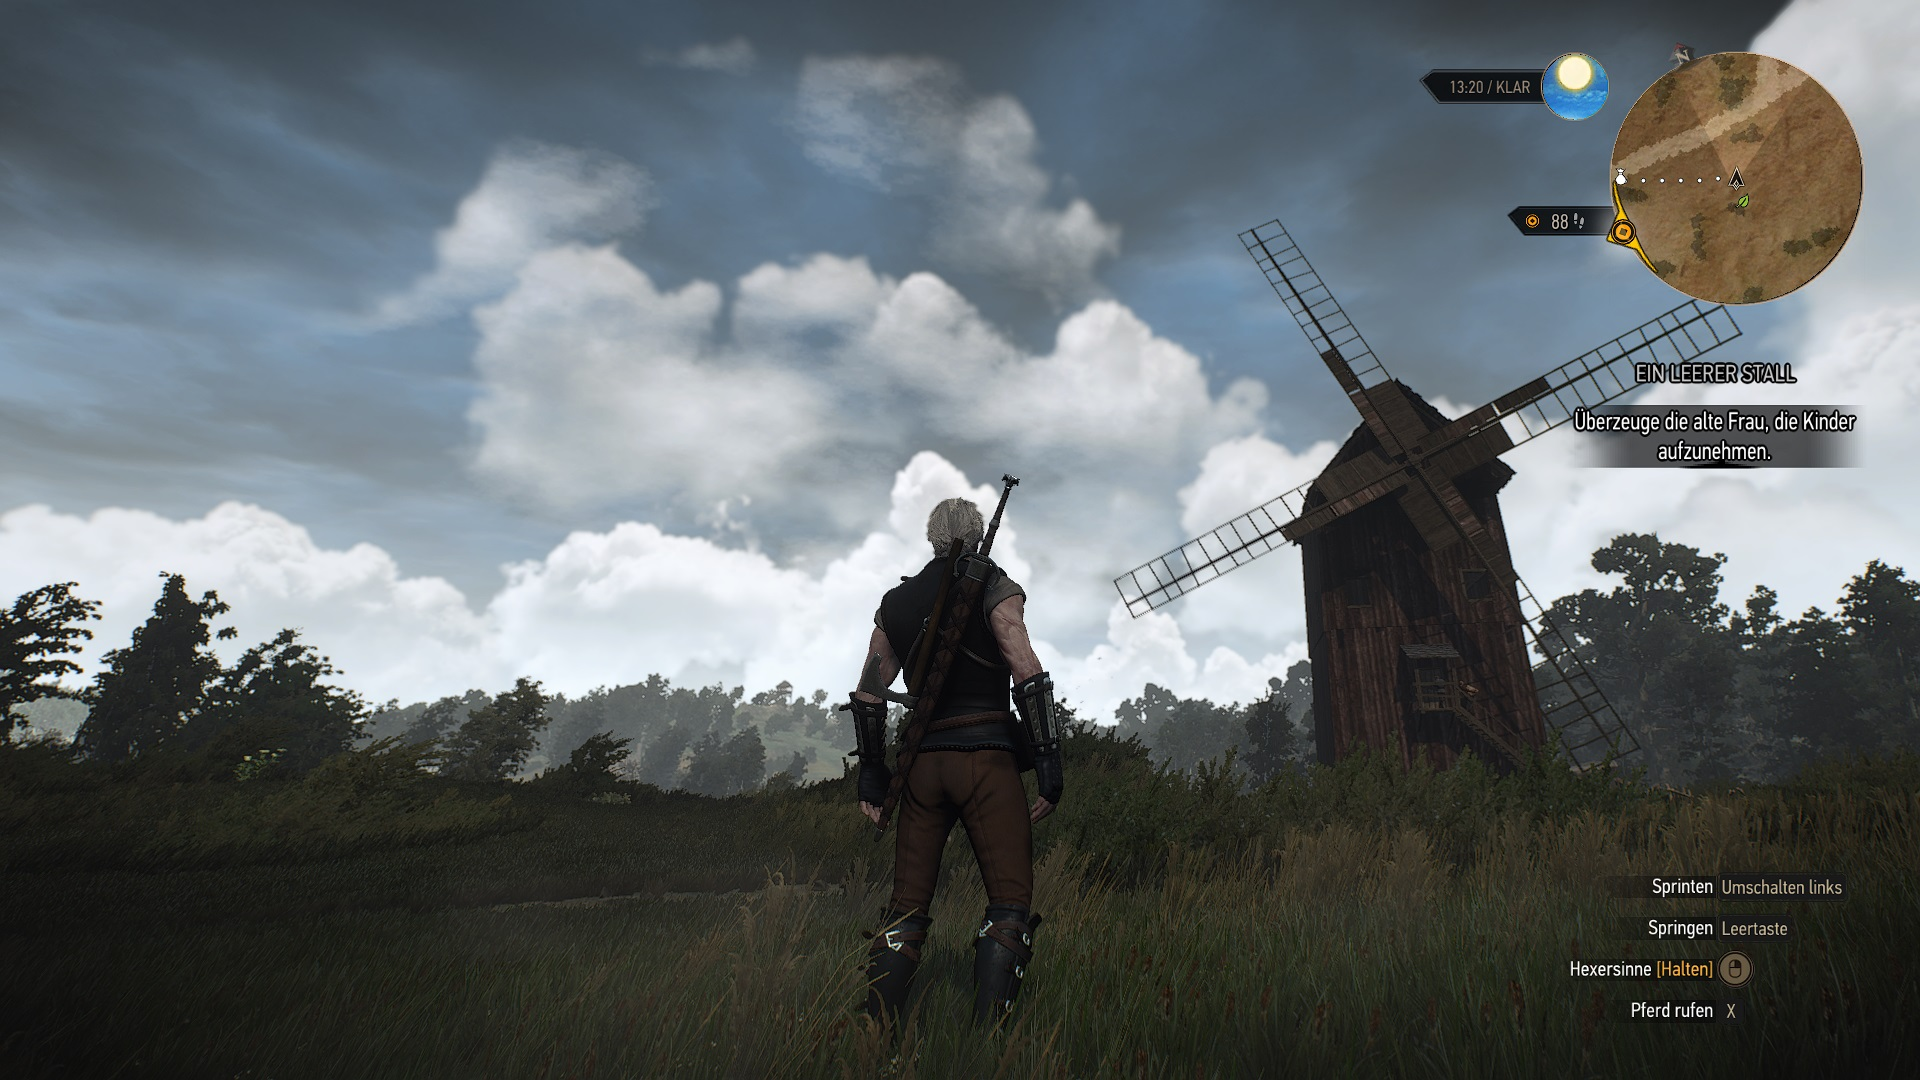 The Witcher 3 14.10.2020 11_38_32.jpg